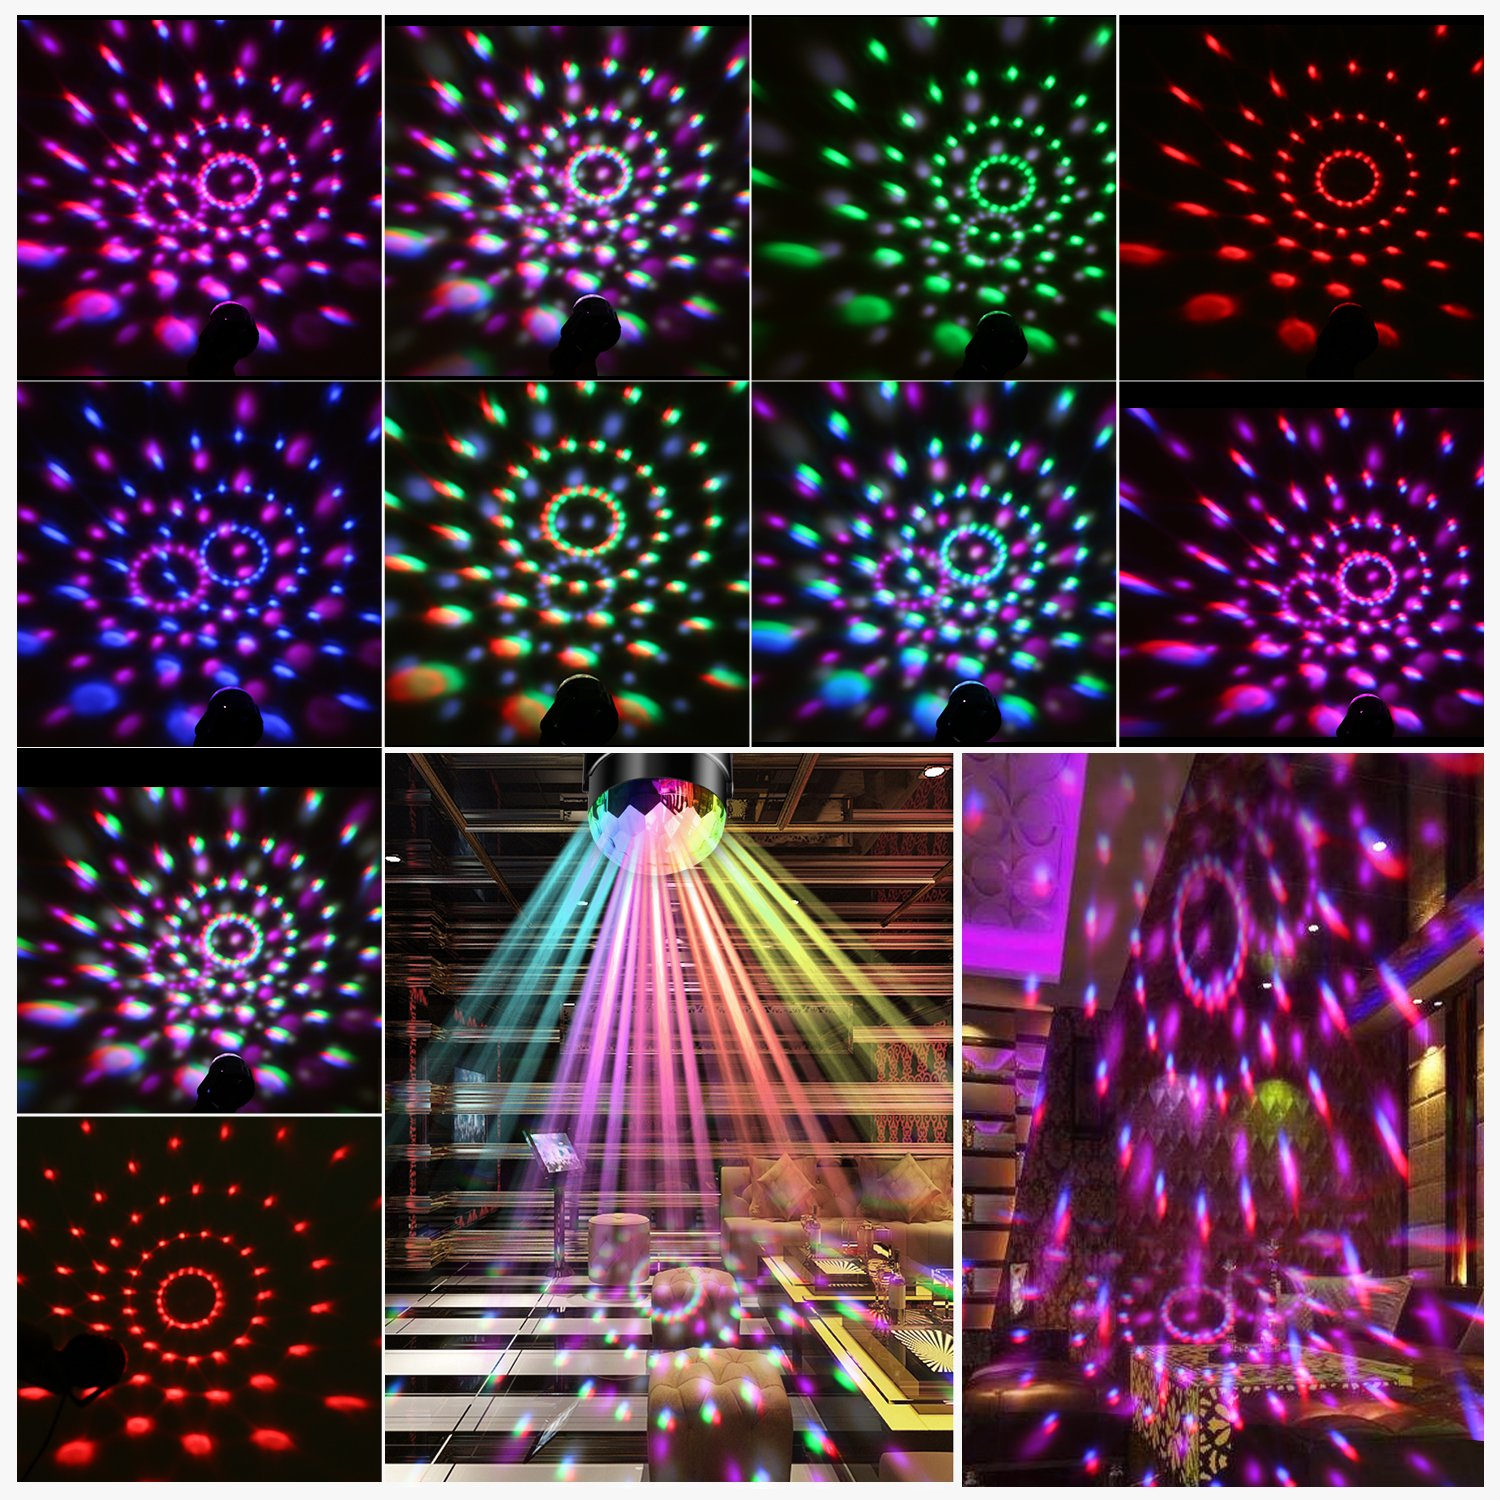 Deep Dream Crystal Ball Party Light Disco Ball Strobe Lighting Rotating Lamp 5W RGBWP LED Sound Activated DJ Karaoke Stage Lights Kids Birthday Gift For Men Home Supplies